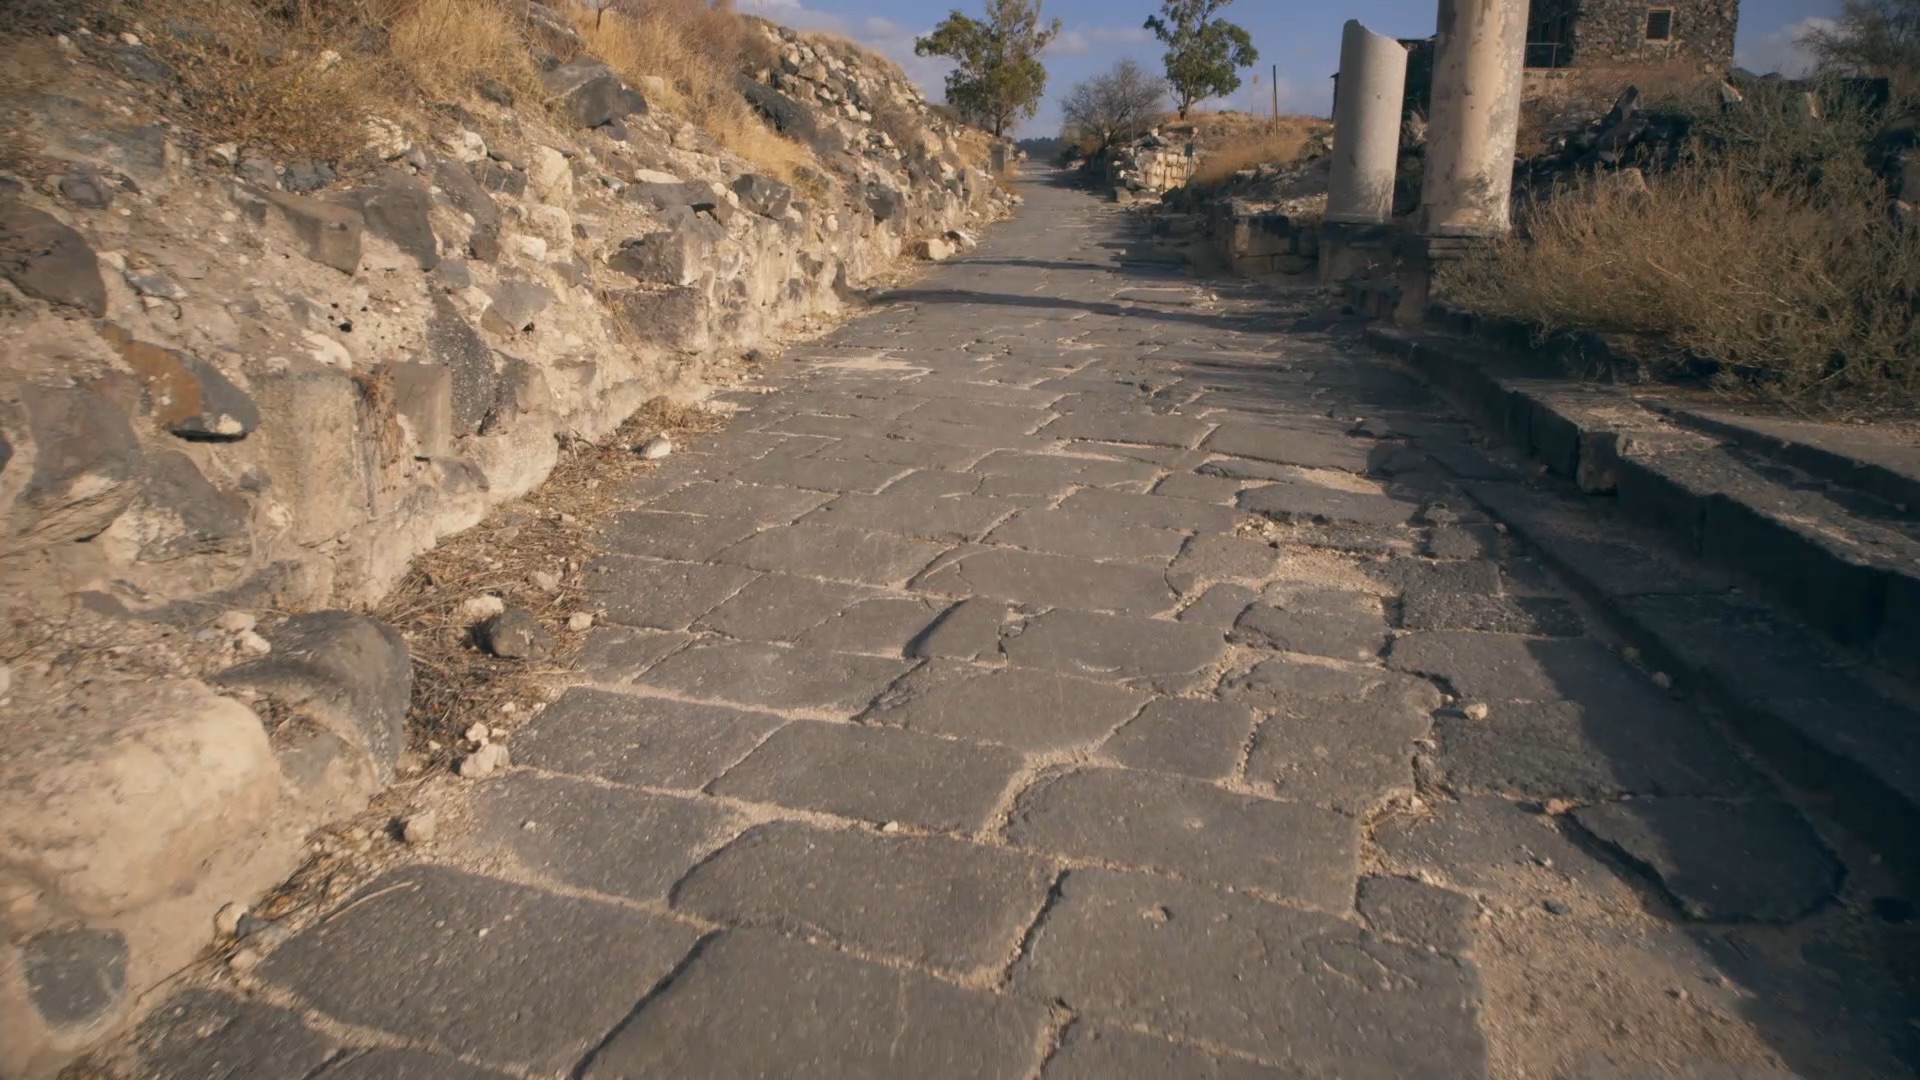 The Roman Road System at the Time of Jesus